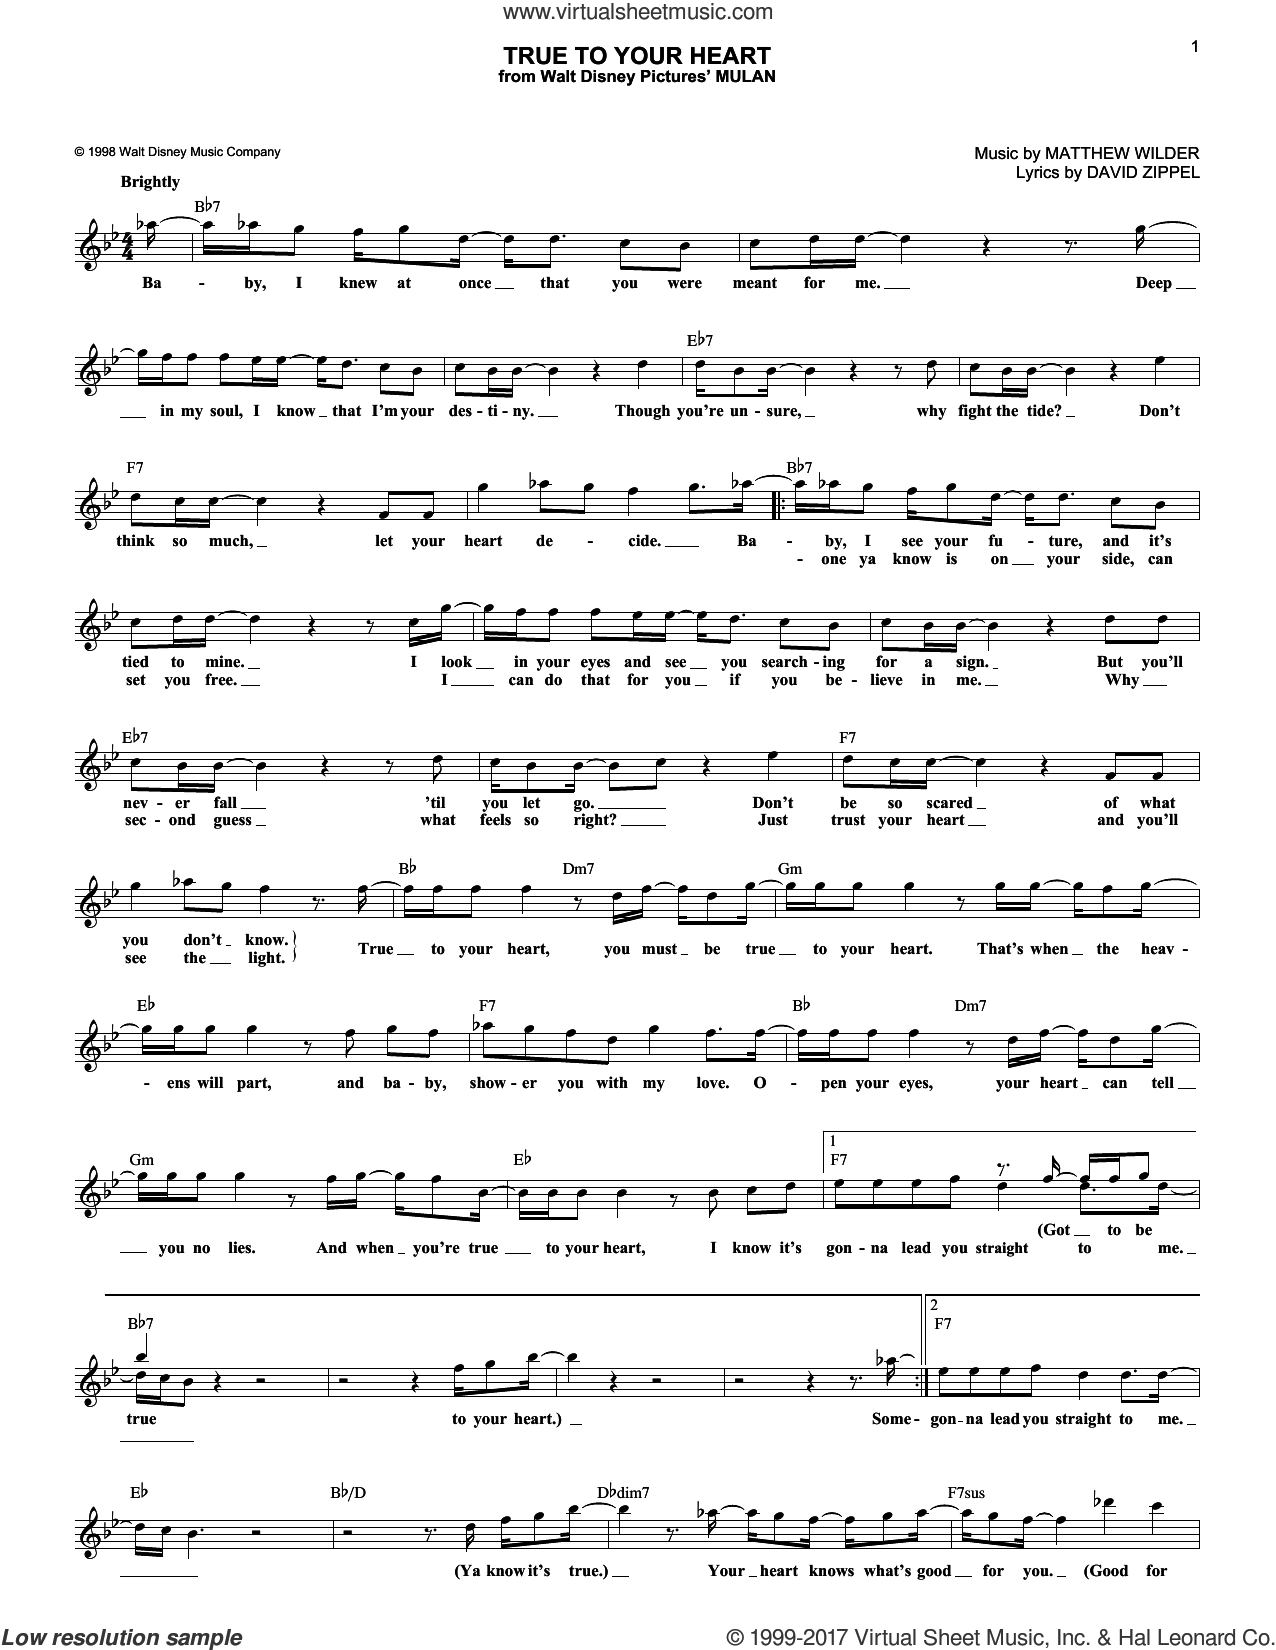 True To Your Heart sheet music for voice and other instruments (fake book) by 98 Degrees featuring Stevie Wonder, David Zippel and Matthew Wilder, intermediate skill level